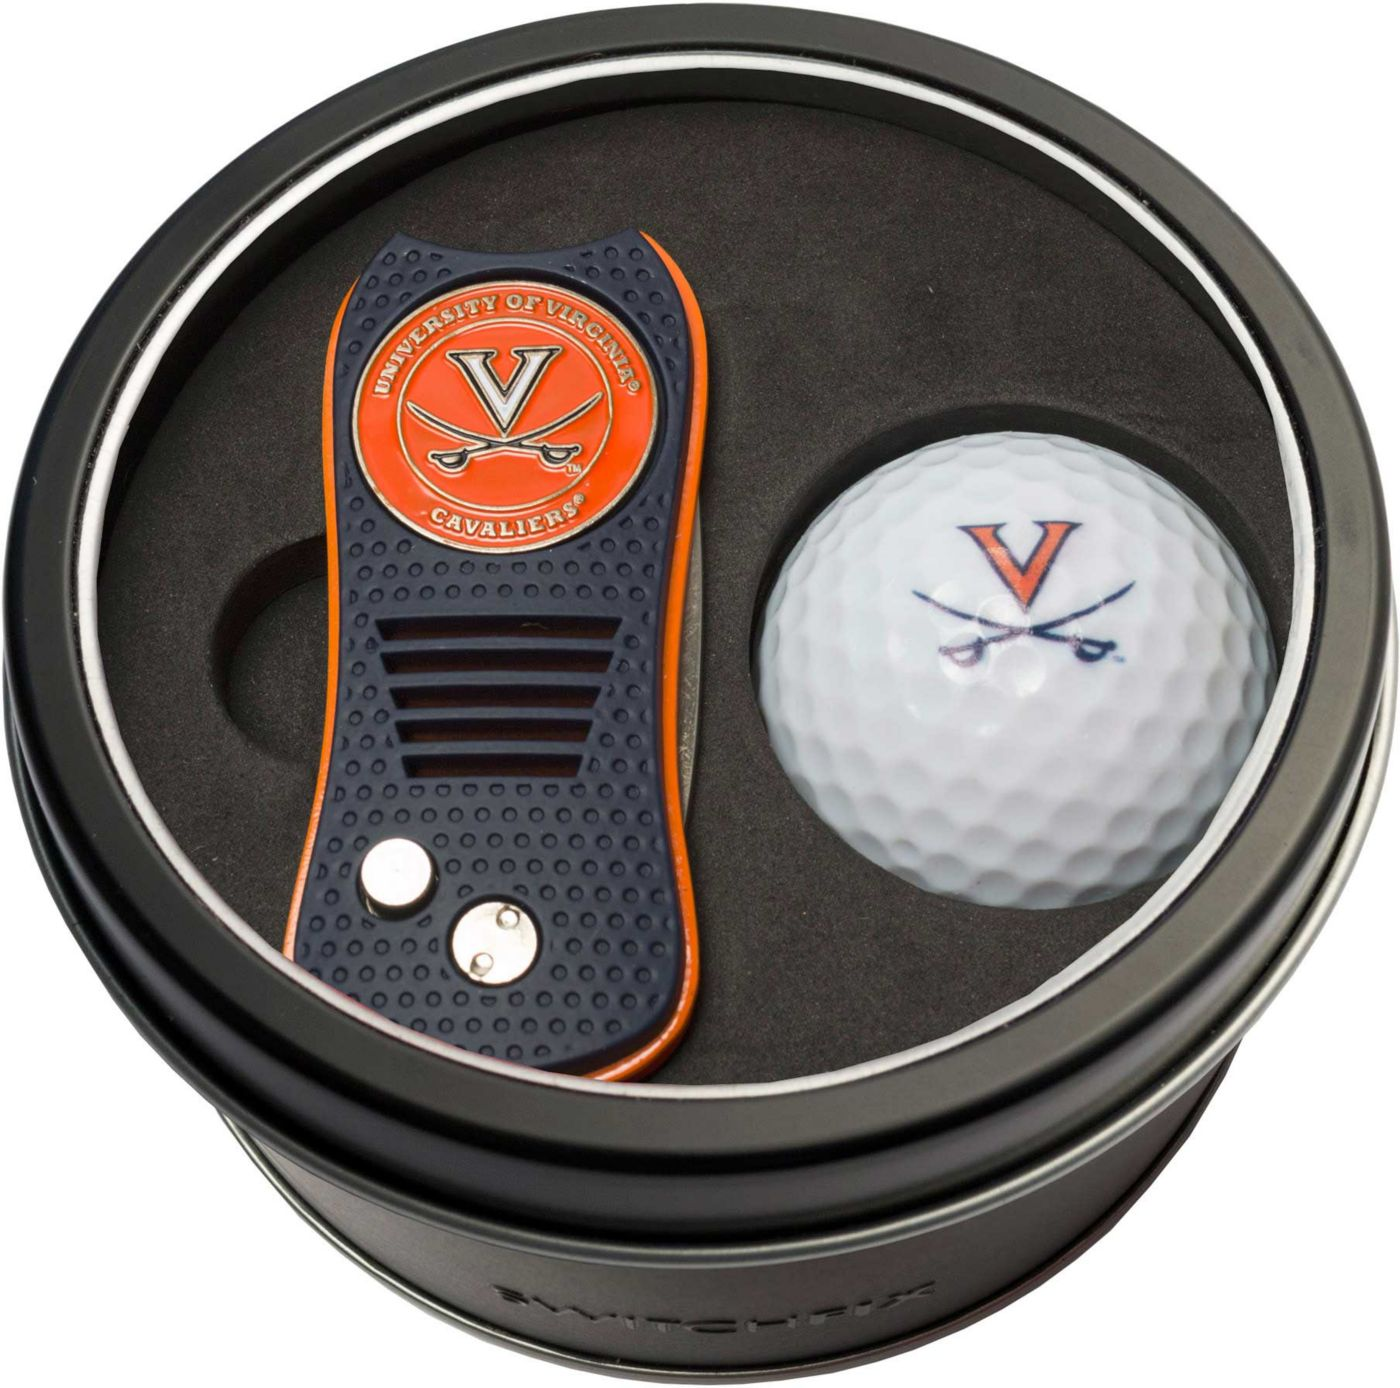 Team Golf Virginia Cavaliers Switchfix Divot Tool and Golf Ball Set